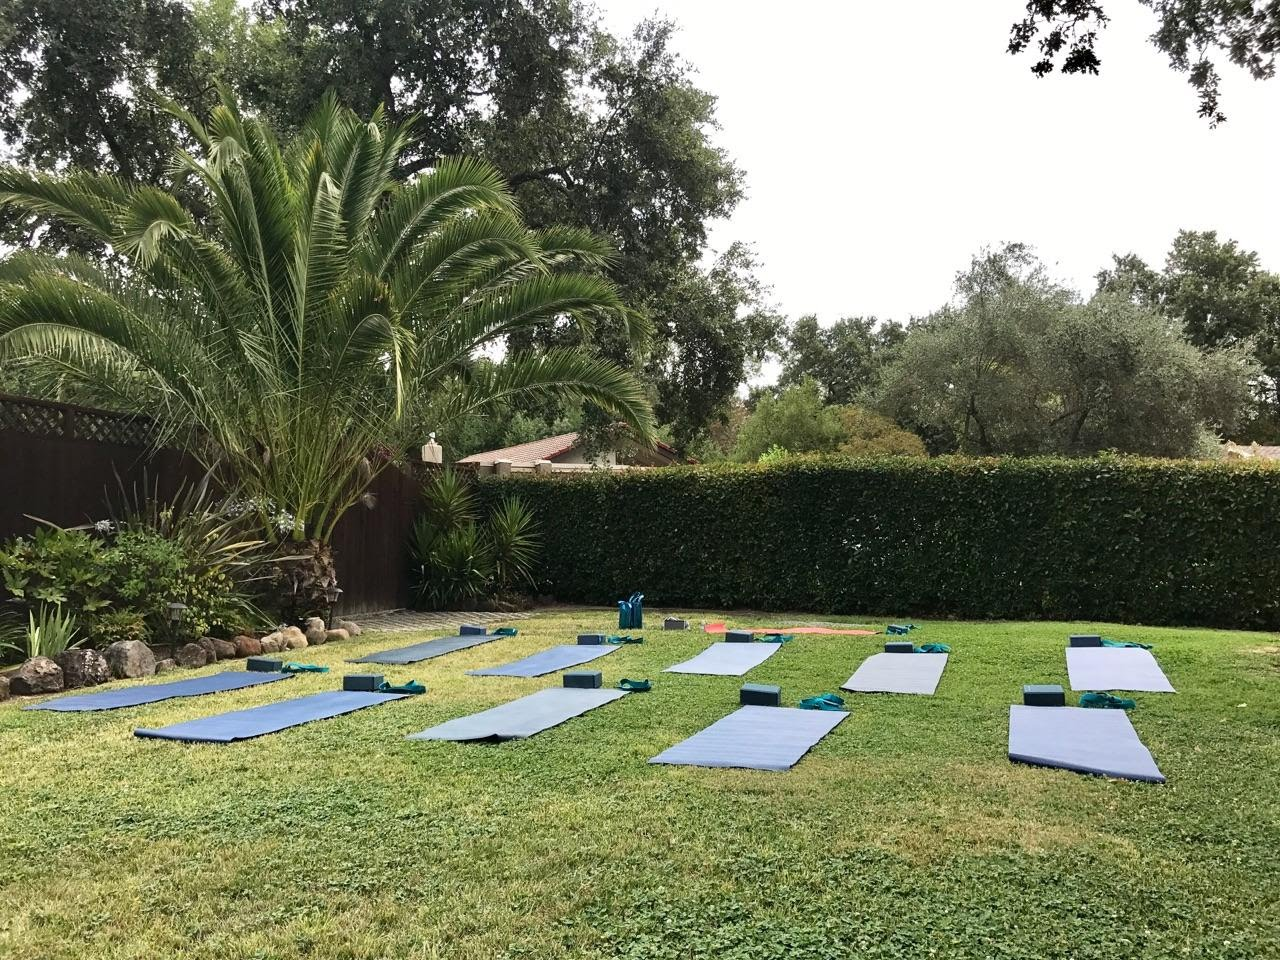 Schedule a private group yoga class for your backyard!